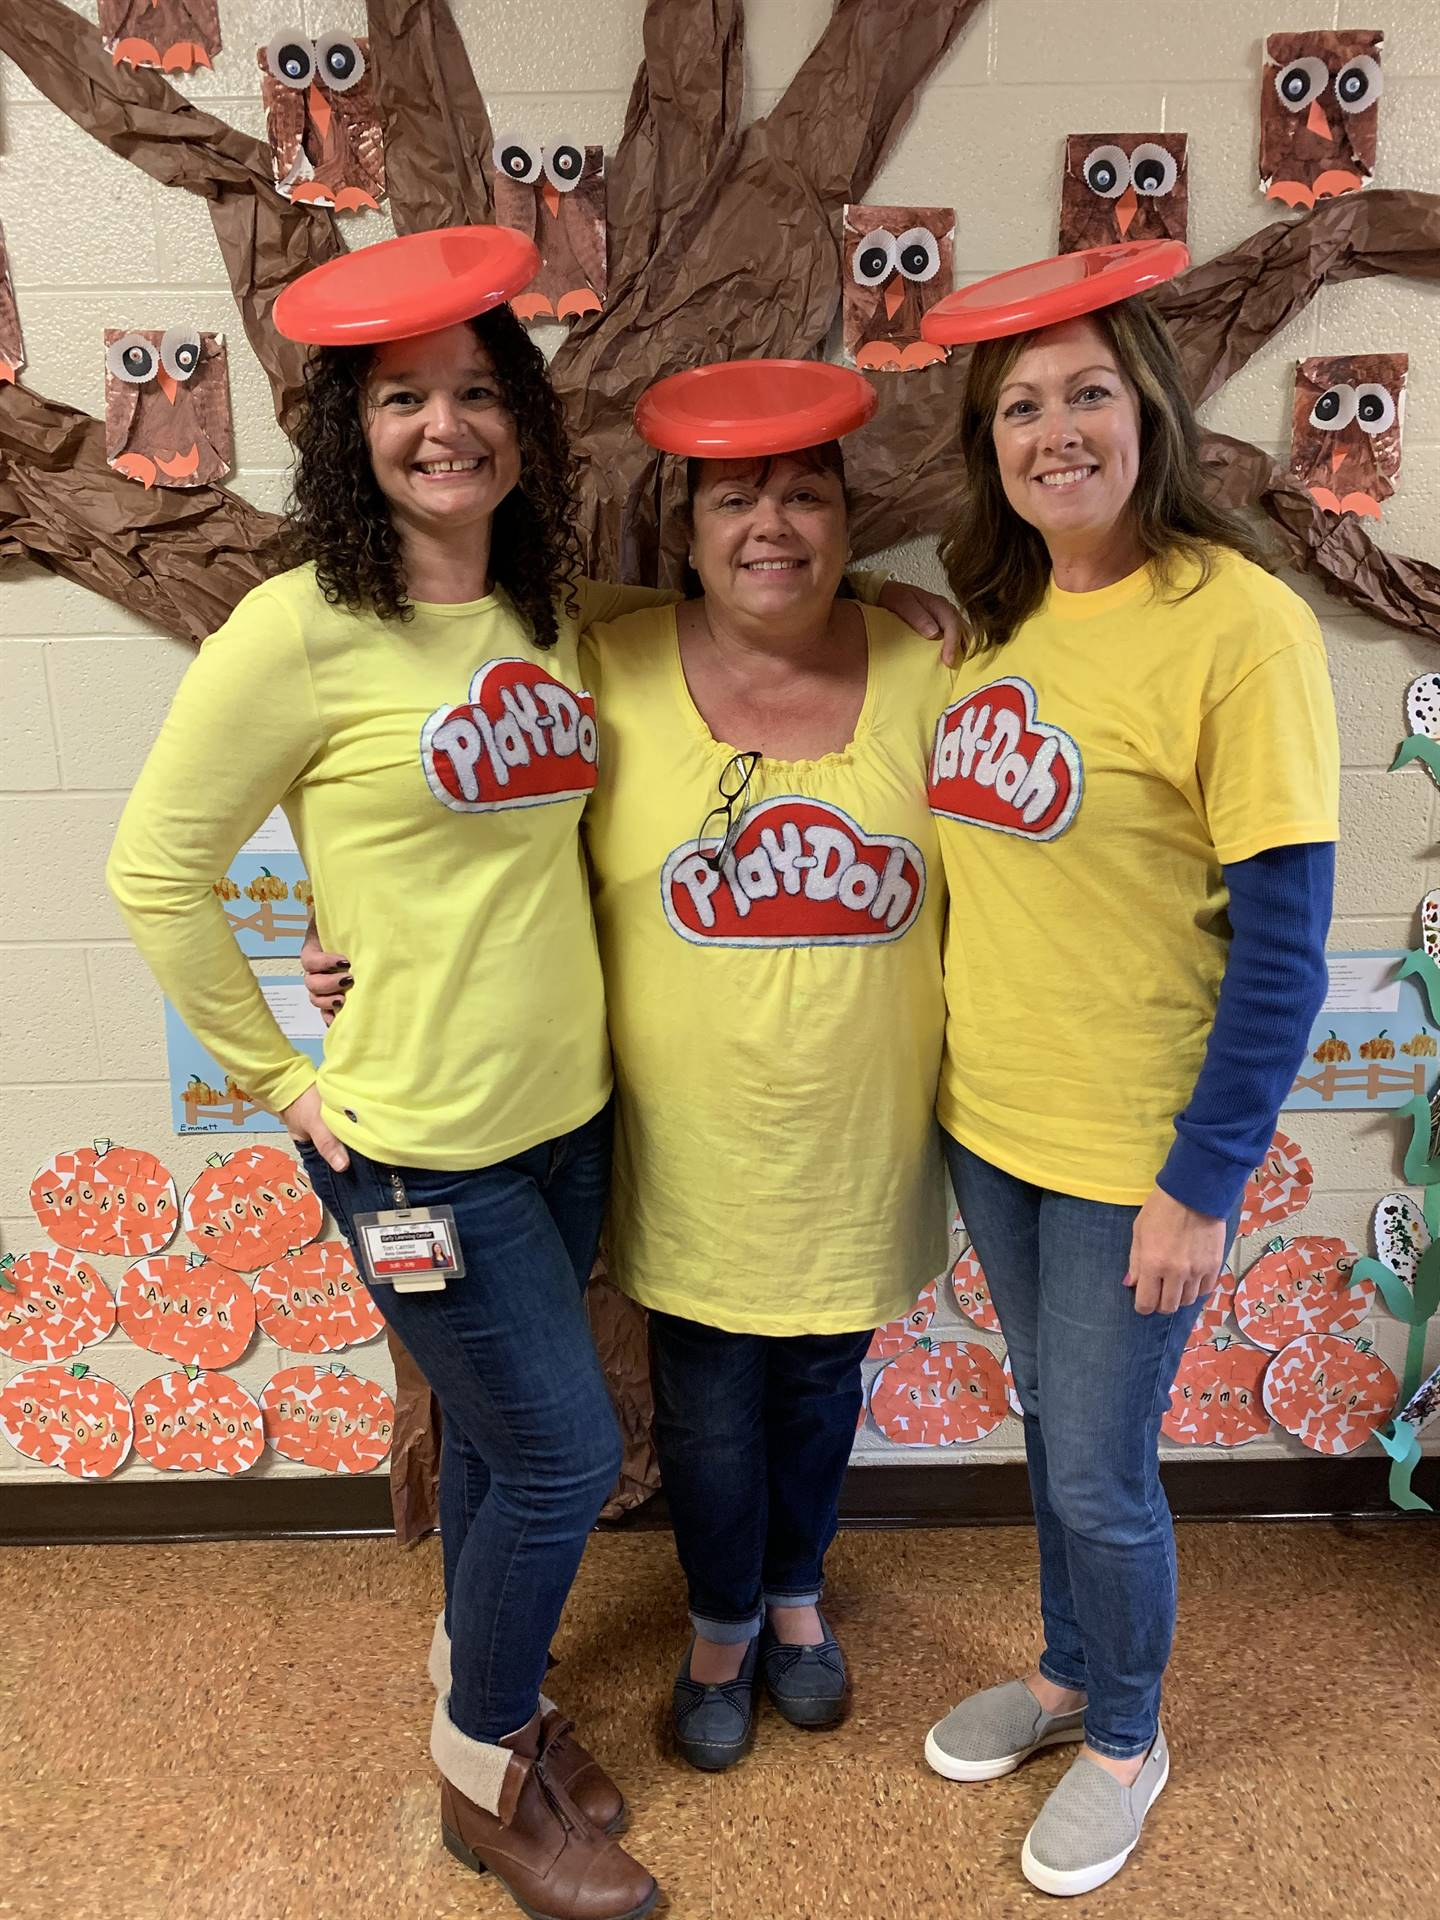 3 ladies with playdoh costumes